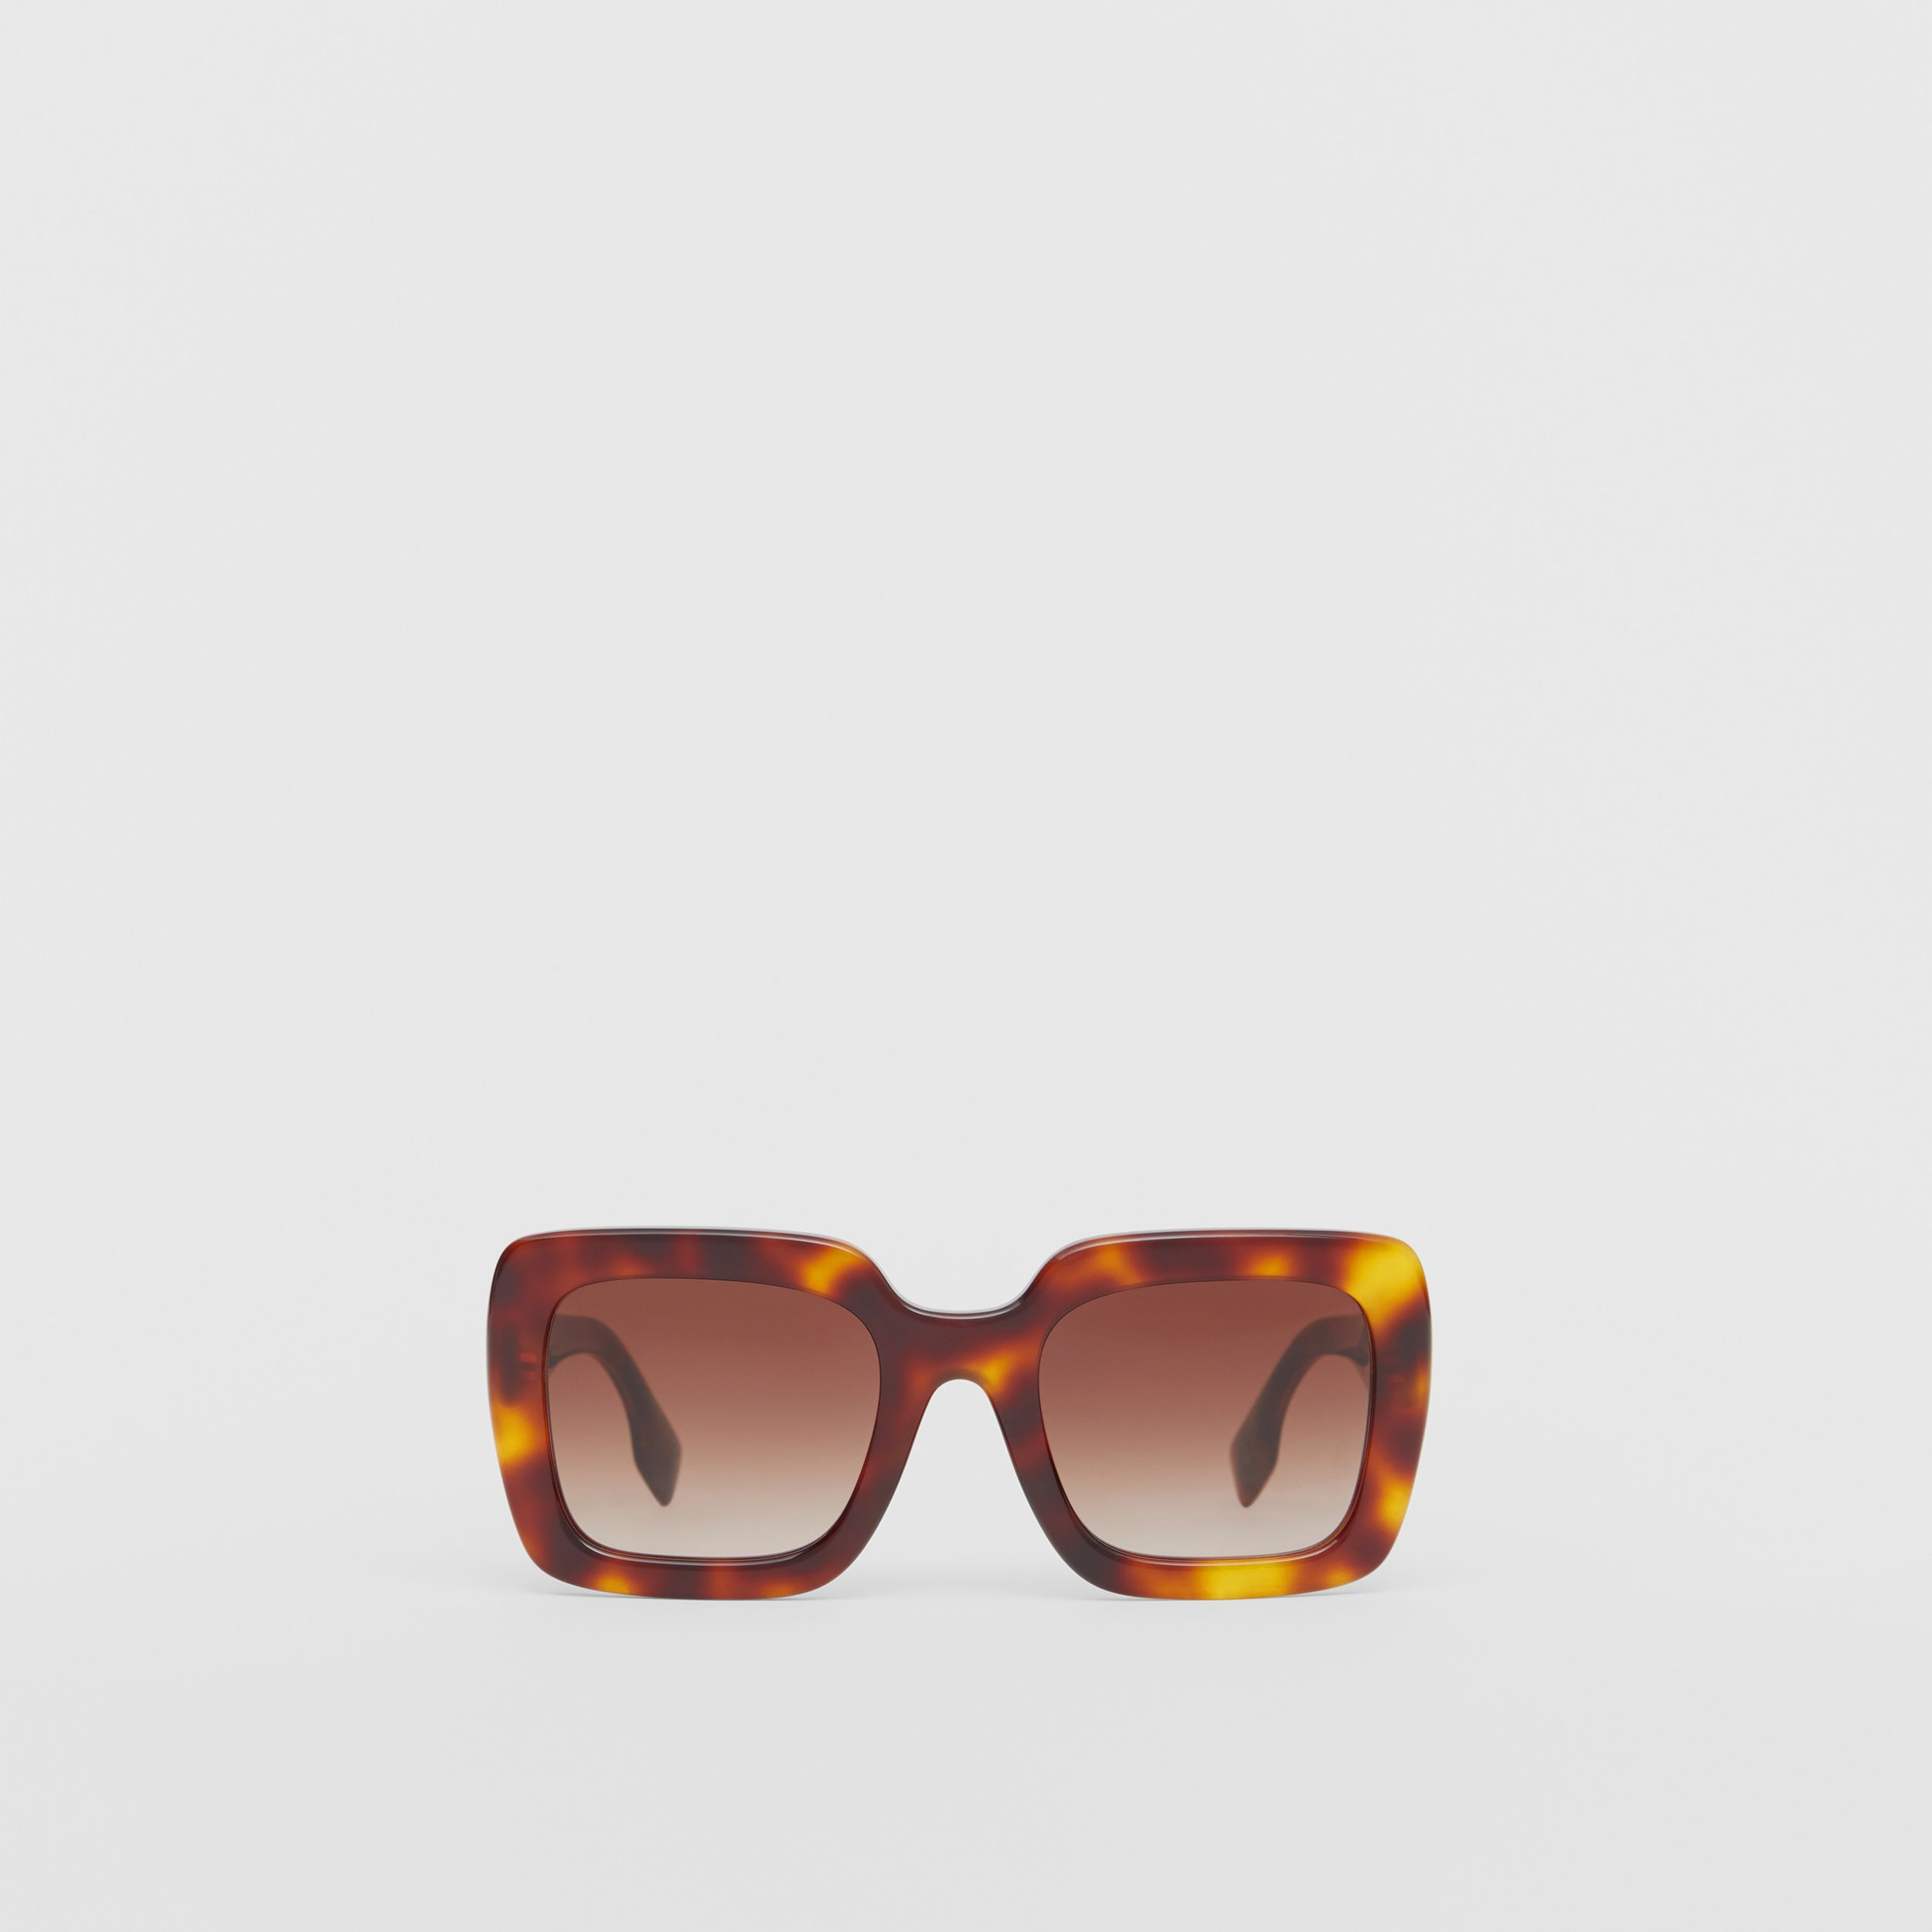 Oversized Square Frame Sunglasses in Tortoiseshell - Women | Burberry Australia - 1